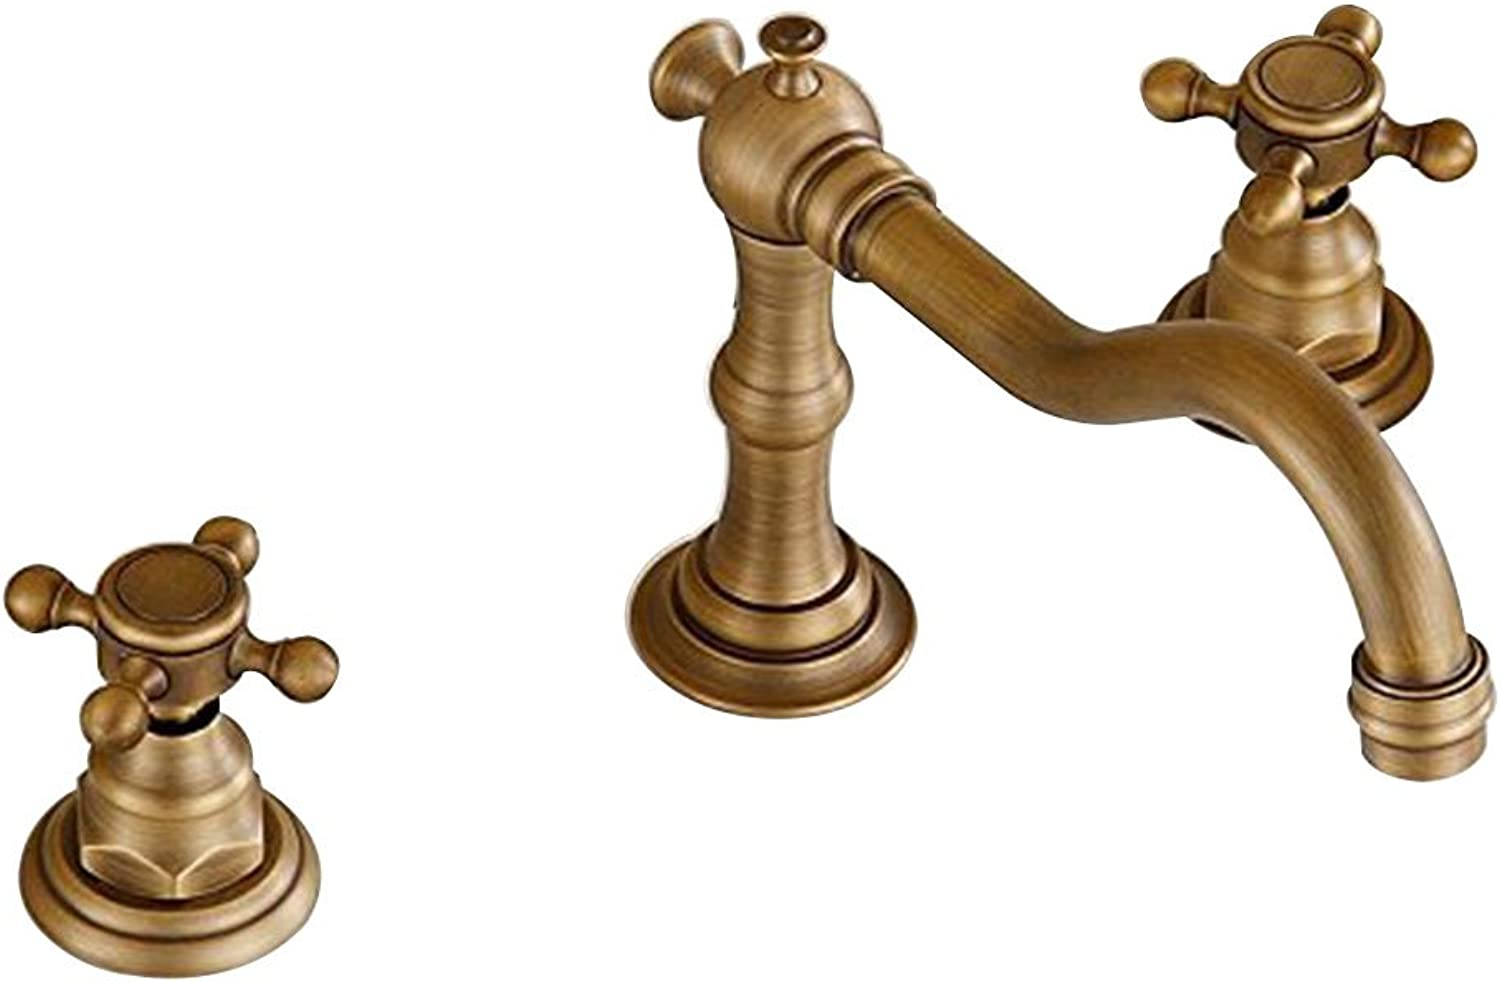 Inchant Brass Bathroom Sink Tap 3-Holes 2-Handles Deck Mount Mixer Tap with Supply Hose Antique Style Brushed Nickel